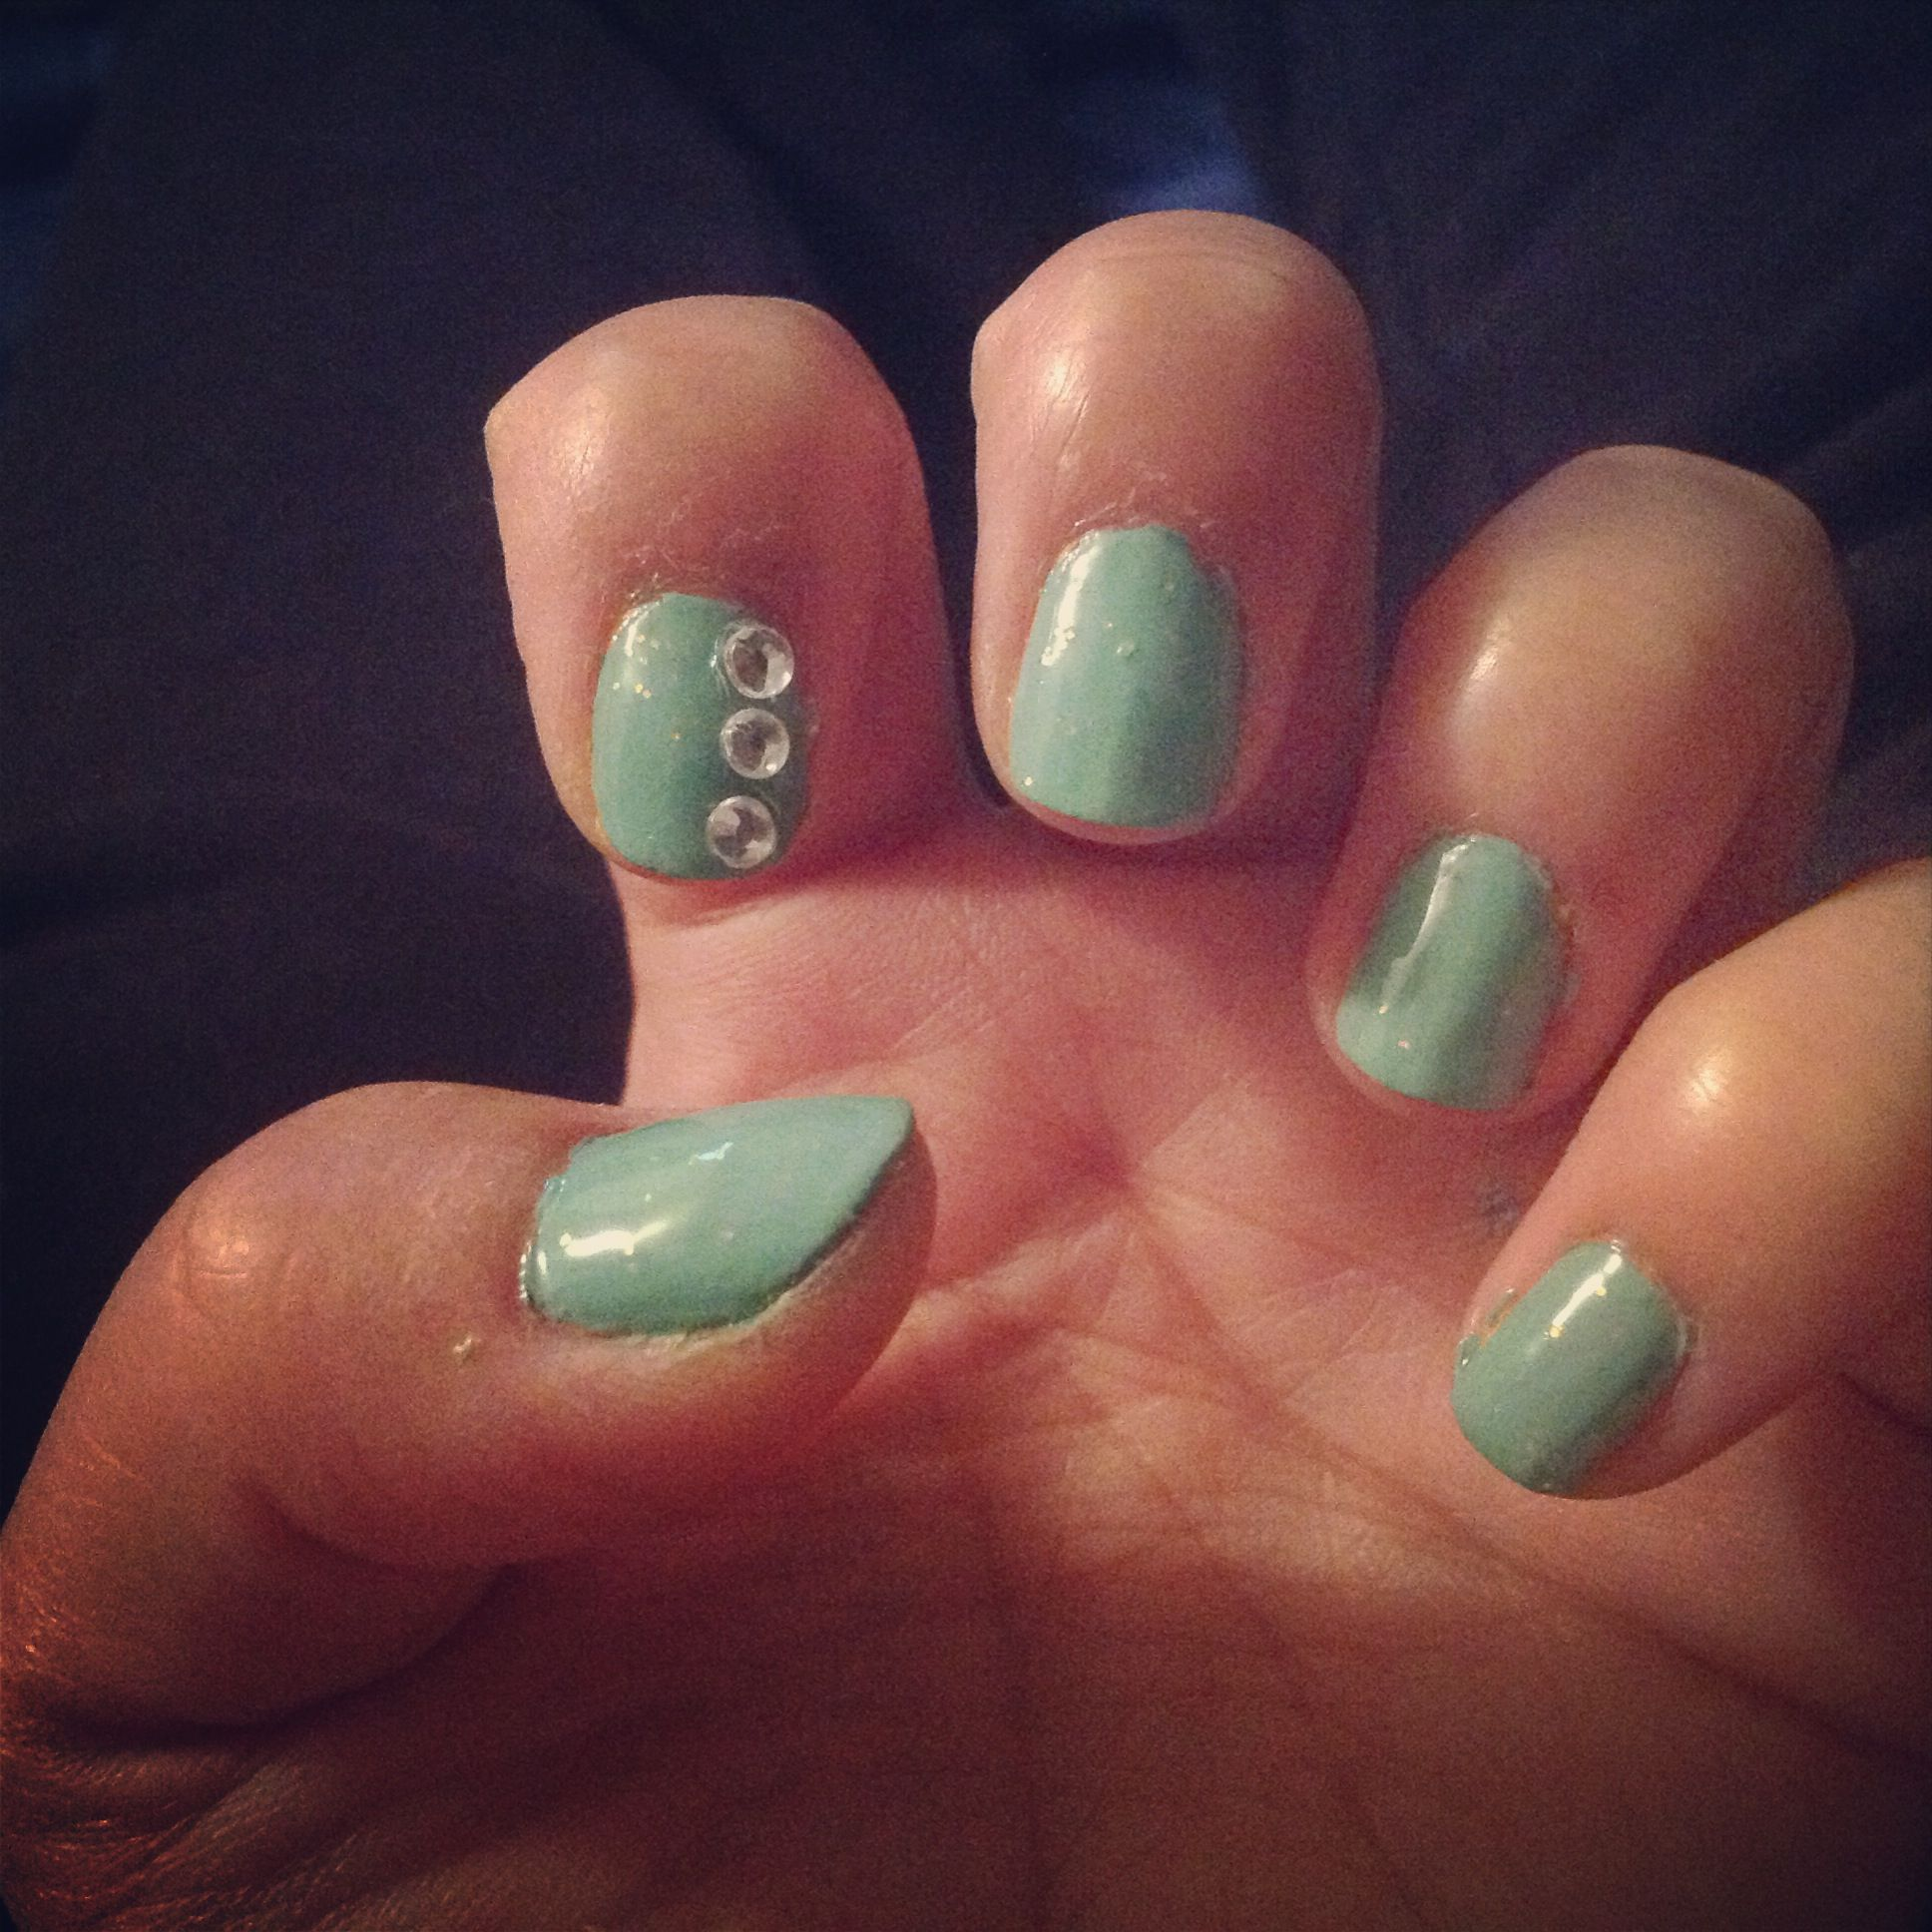 Variety Of Nail Art By Yours Truly: Tiffany Inspired Nail Art For Short Nails